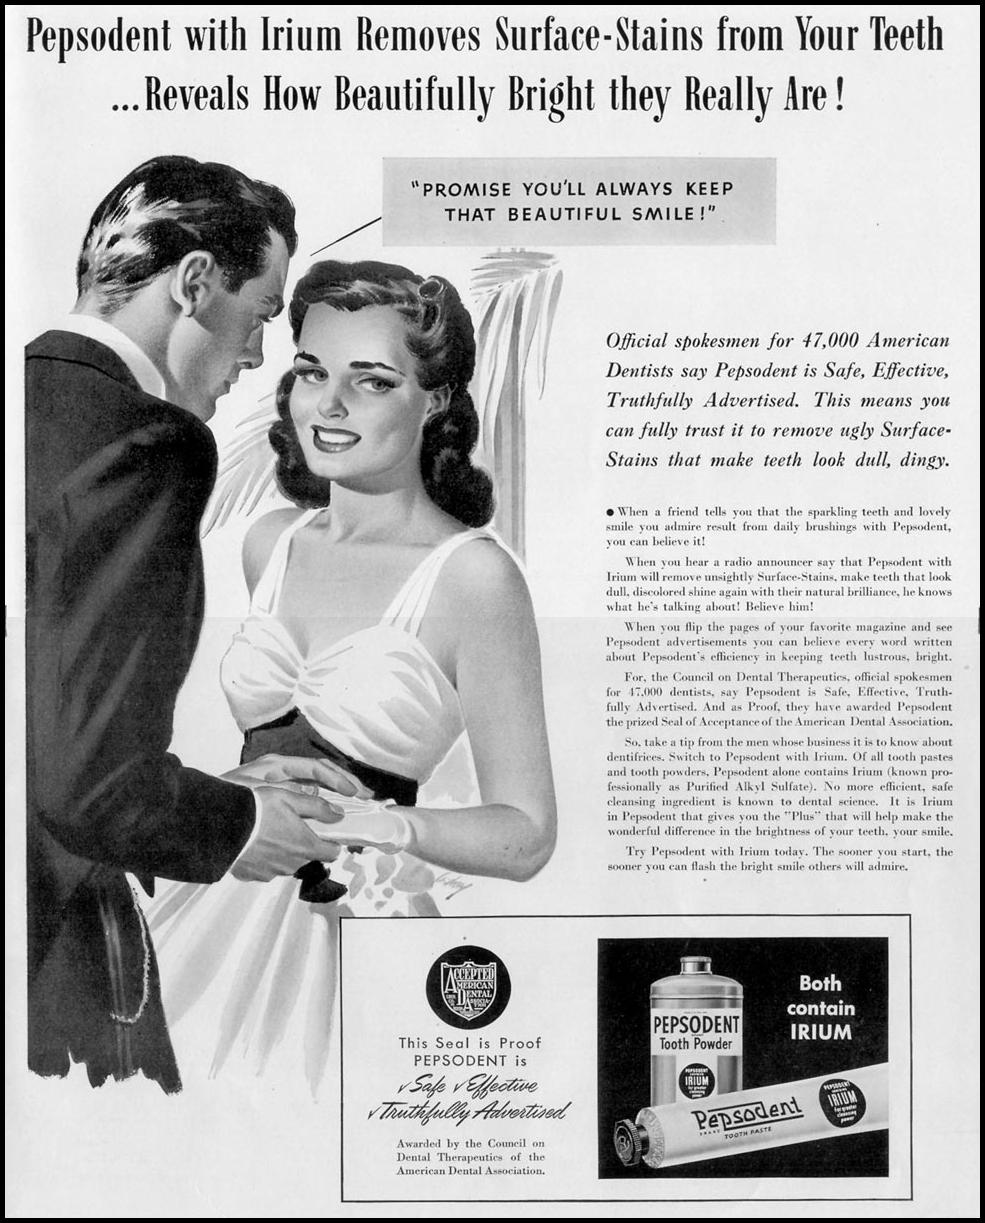 PEPSODENT TOOTHPASTE LIFE 09/16/1940 p. 7